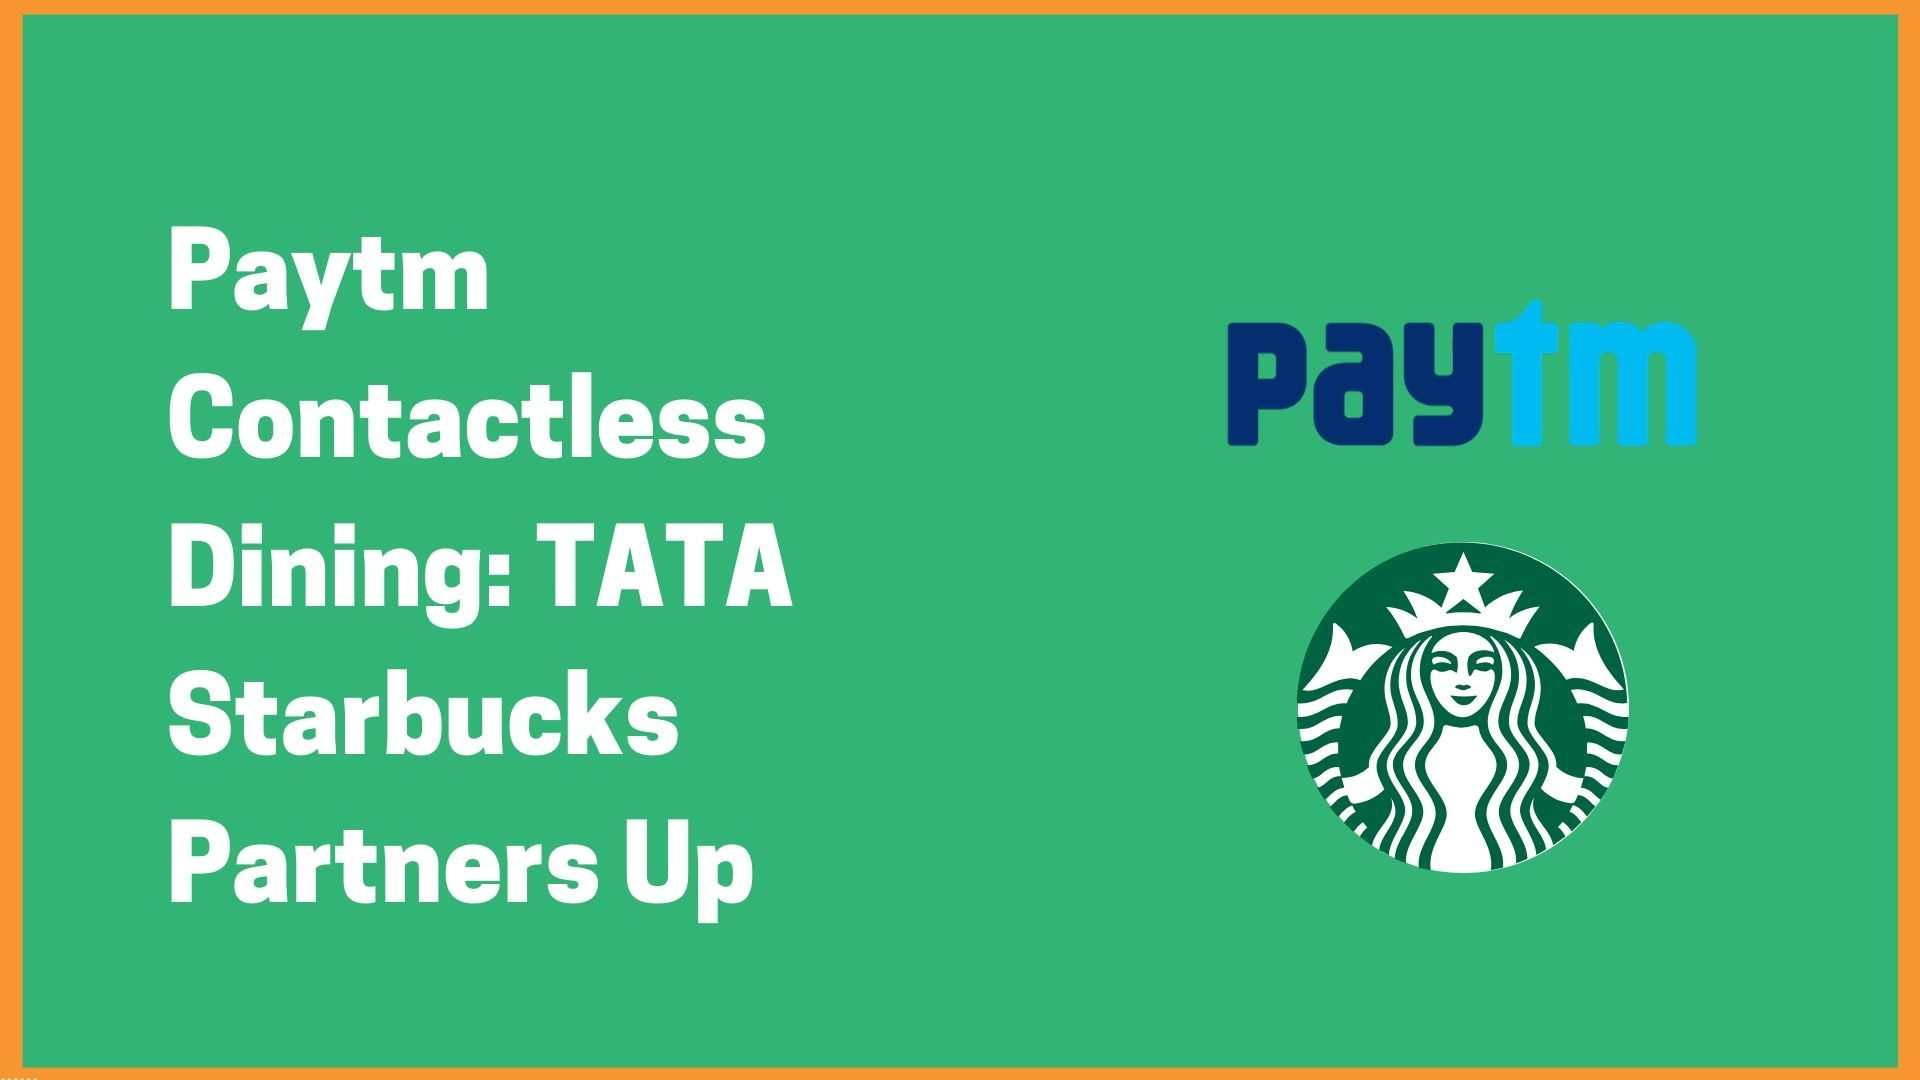 Paytm Contactless Dining: TATA Starbucks Partners Up